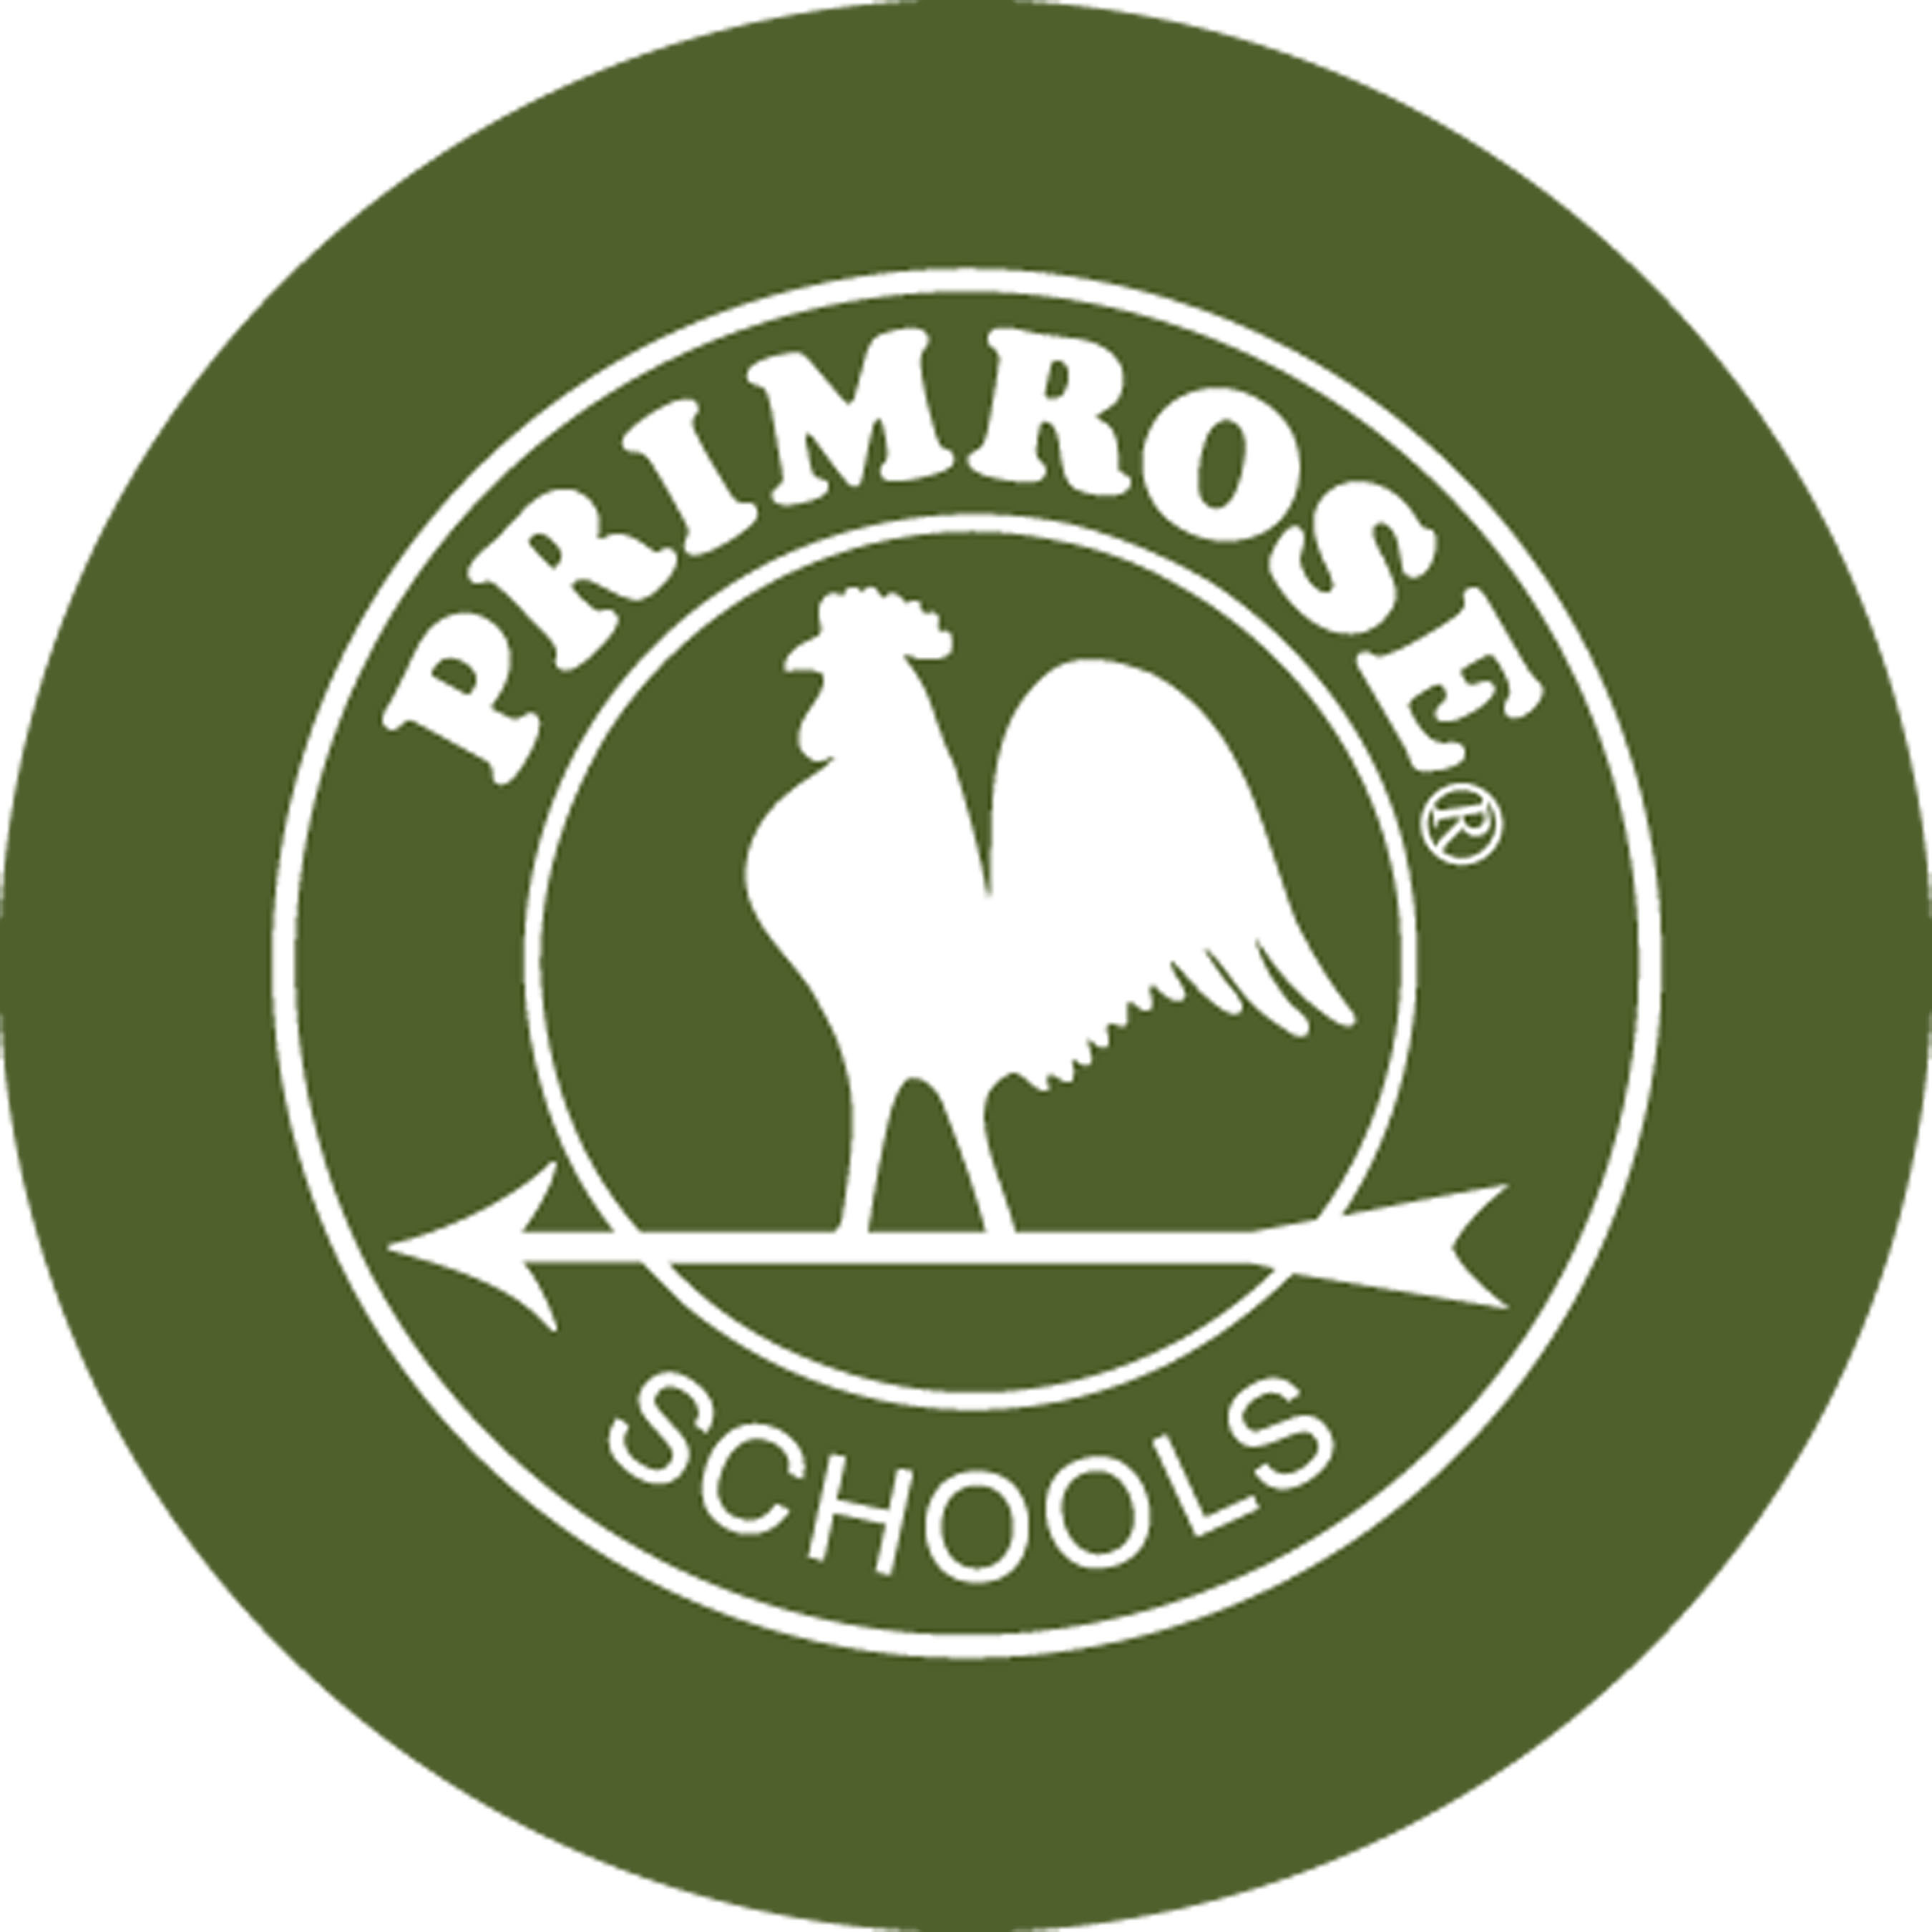 Primrose Schools is the nation's leader in providing a premier early education and care experience.